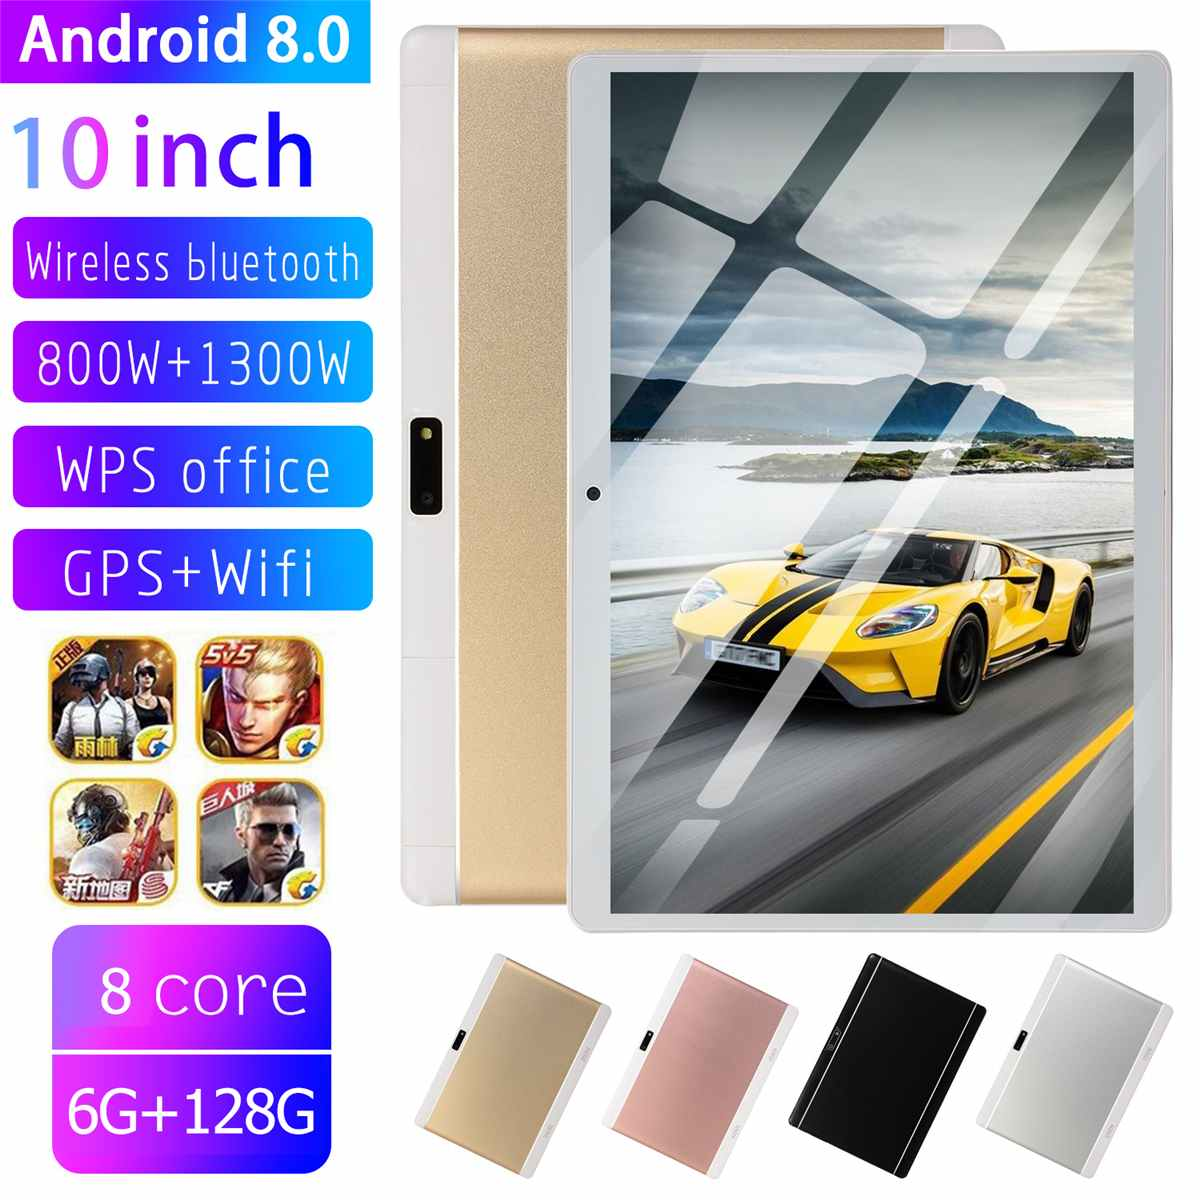 6+128GB 9000mAh 10.1 Inch HD Tablet PC Dual Cameras/SIMs Octa Cores 3G Call Tab GPS WIFi Bluetooth 4.0 Pad Android 8.0 Tab